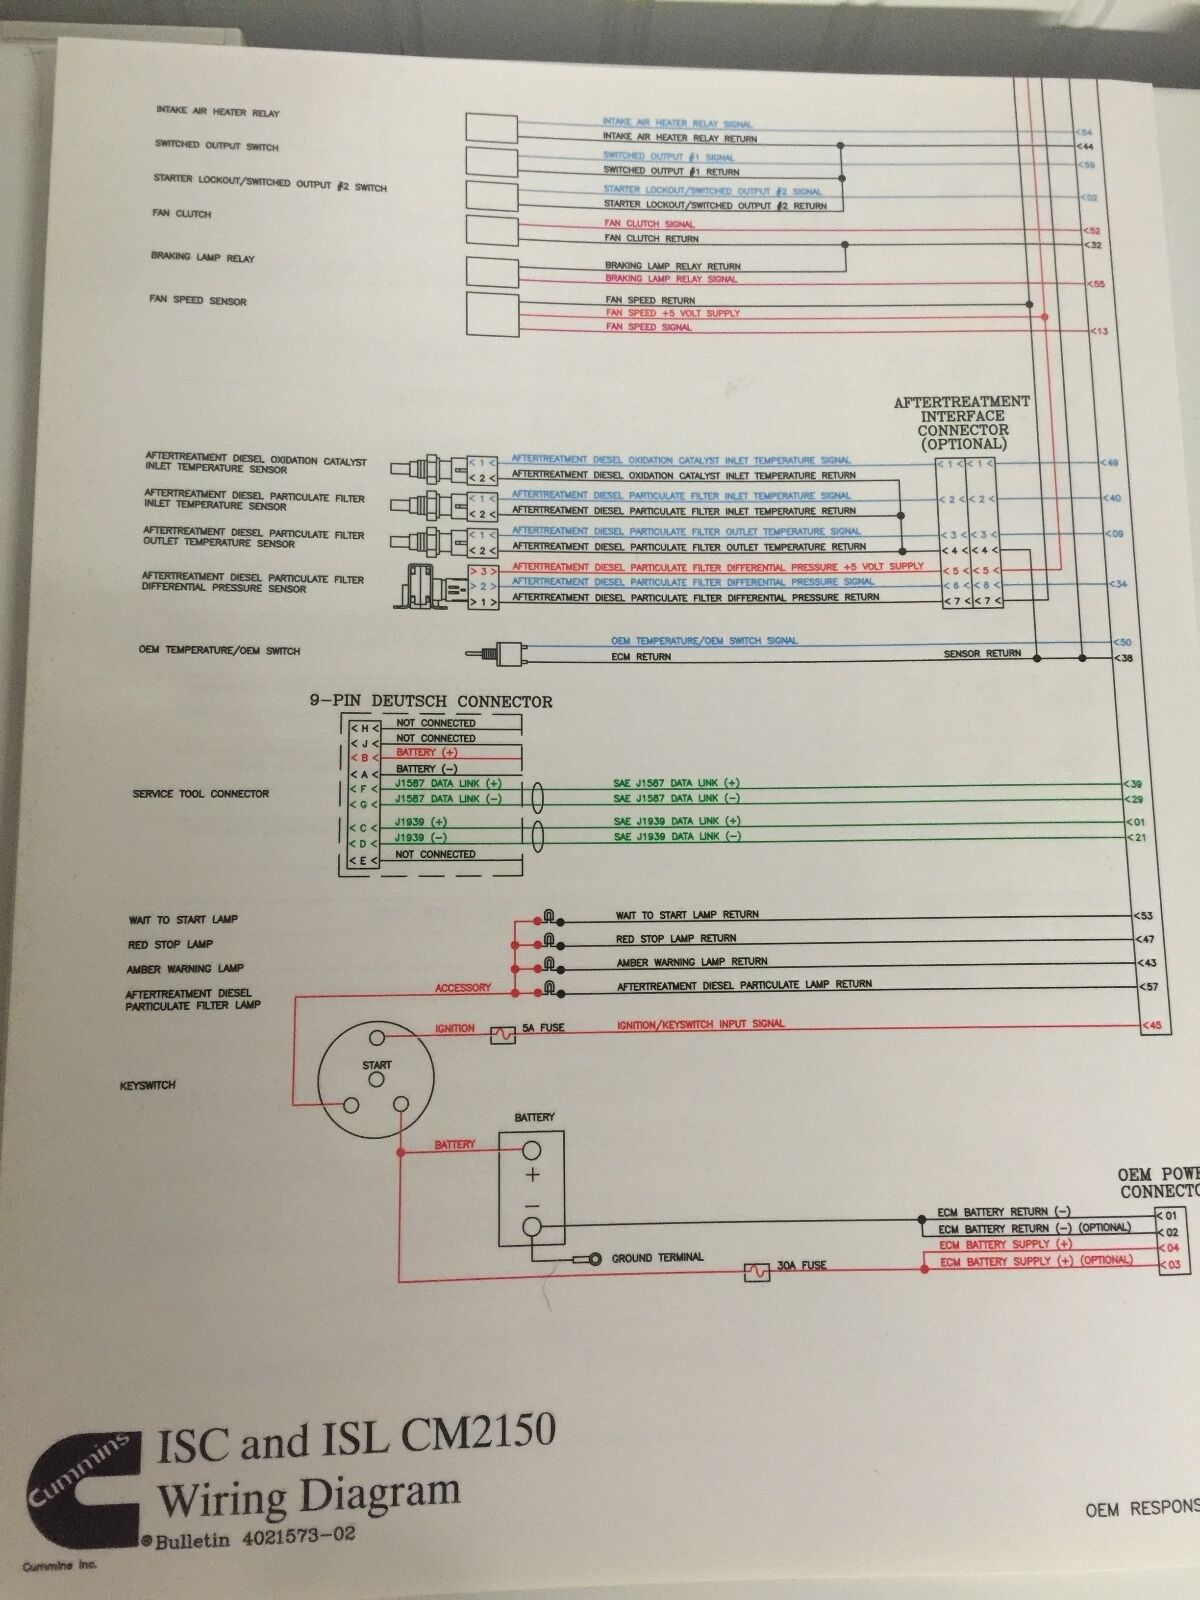 Manuals Books Heavy Equipment Parts Accs Business Industrial Lb75 Wiring Diagram Isc And Isl Cm2150 Wire Cummins Map 4021573